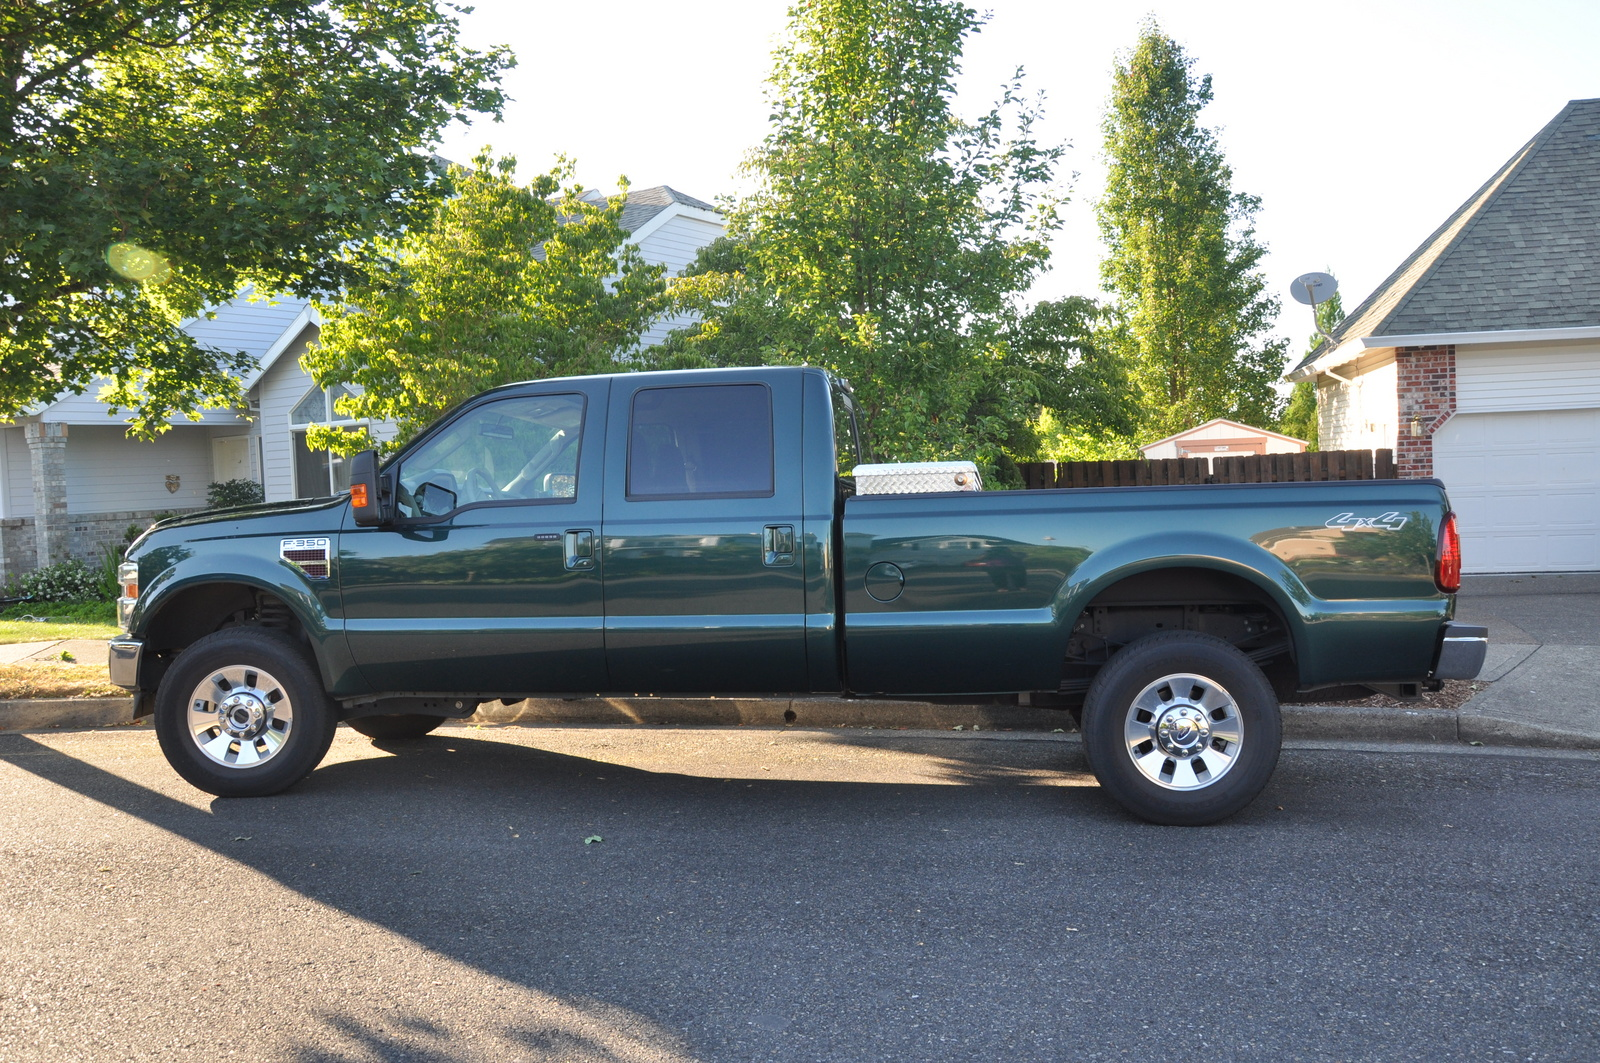 2003 Ford F350 Xl Crew Cab Super Duty Drw Reviews >> 2010 Ford F-350 Super Duty - Pictures - CarGurus